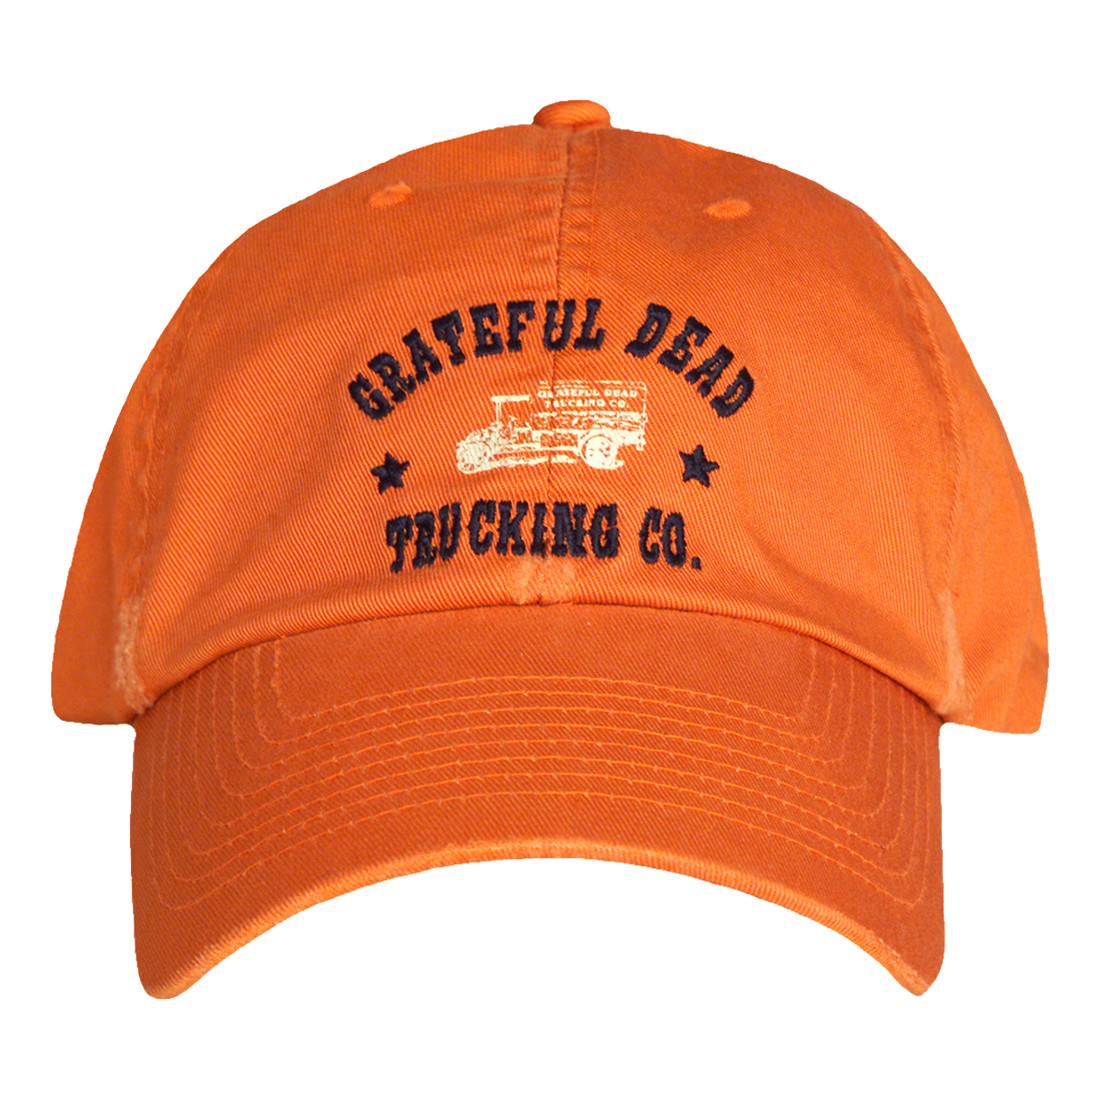 GD Trucking Hat Orange Hat